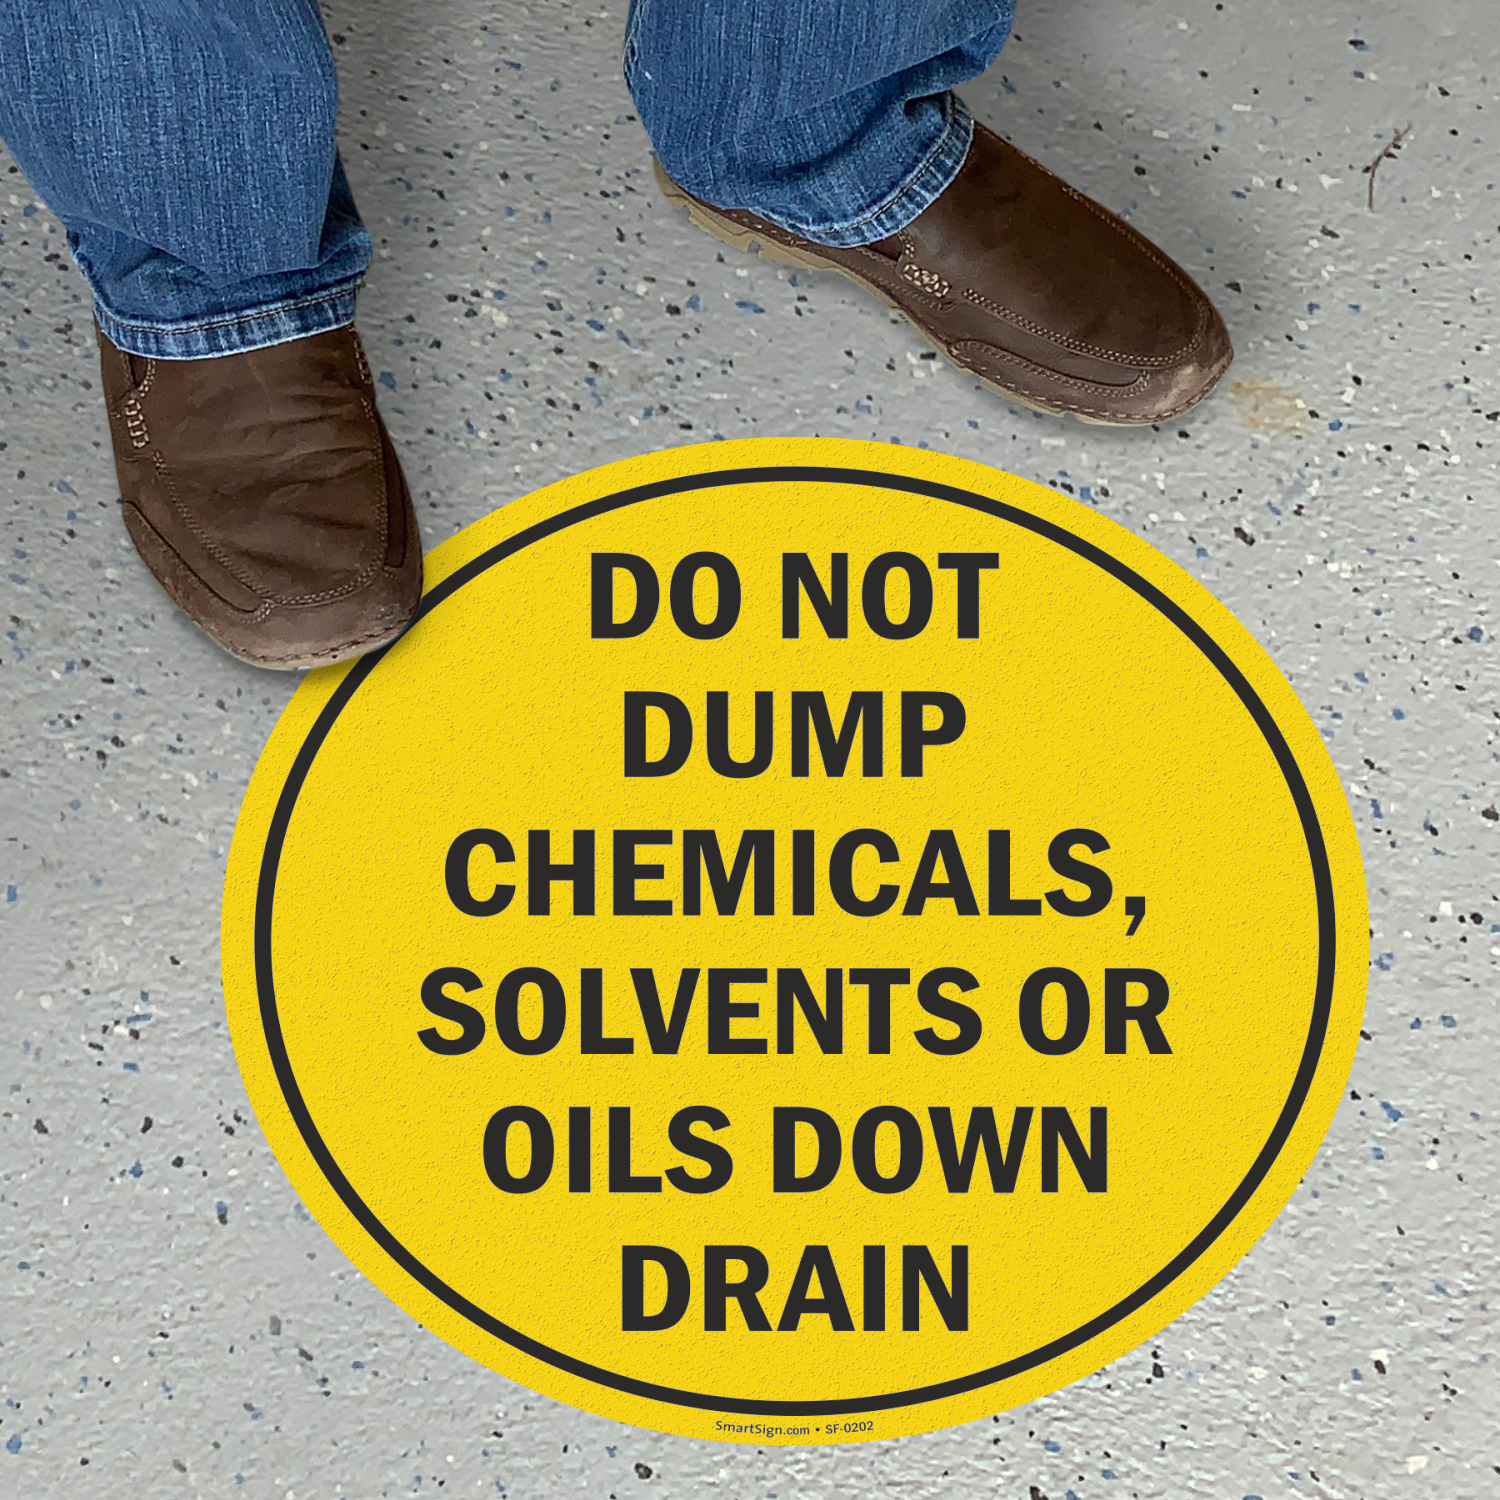 Do Not Dump Chemicals Solvents Or Oils Down Drain Sign